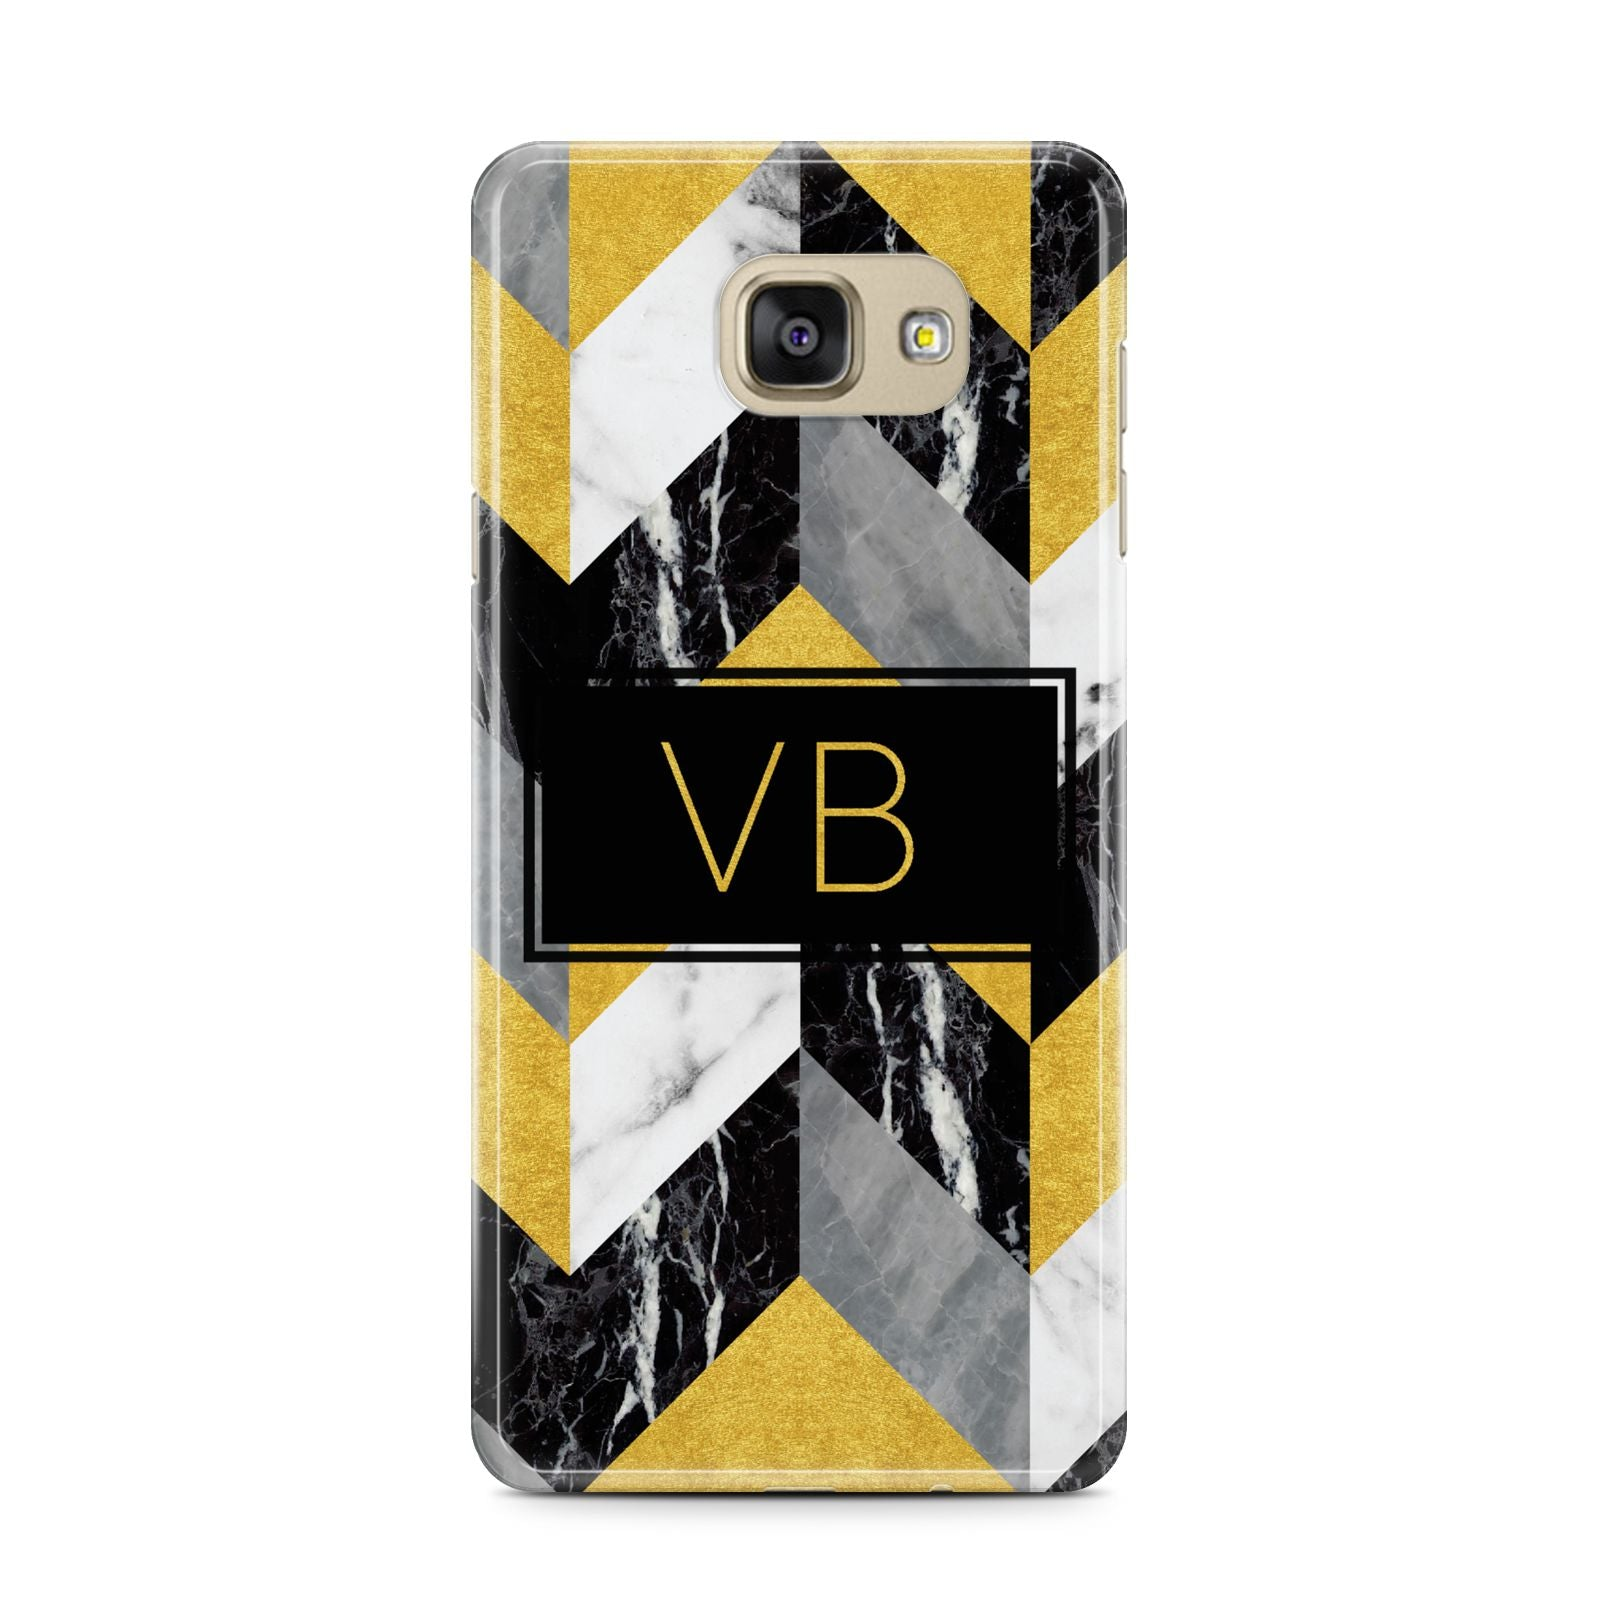 Personalised Marble Effect Initials Samsung Galaxy A7 2016 Case on gold phone